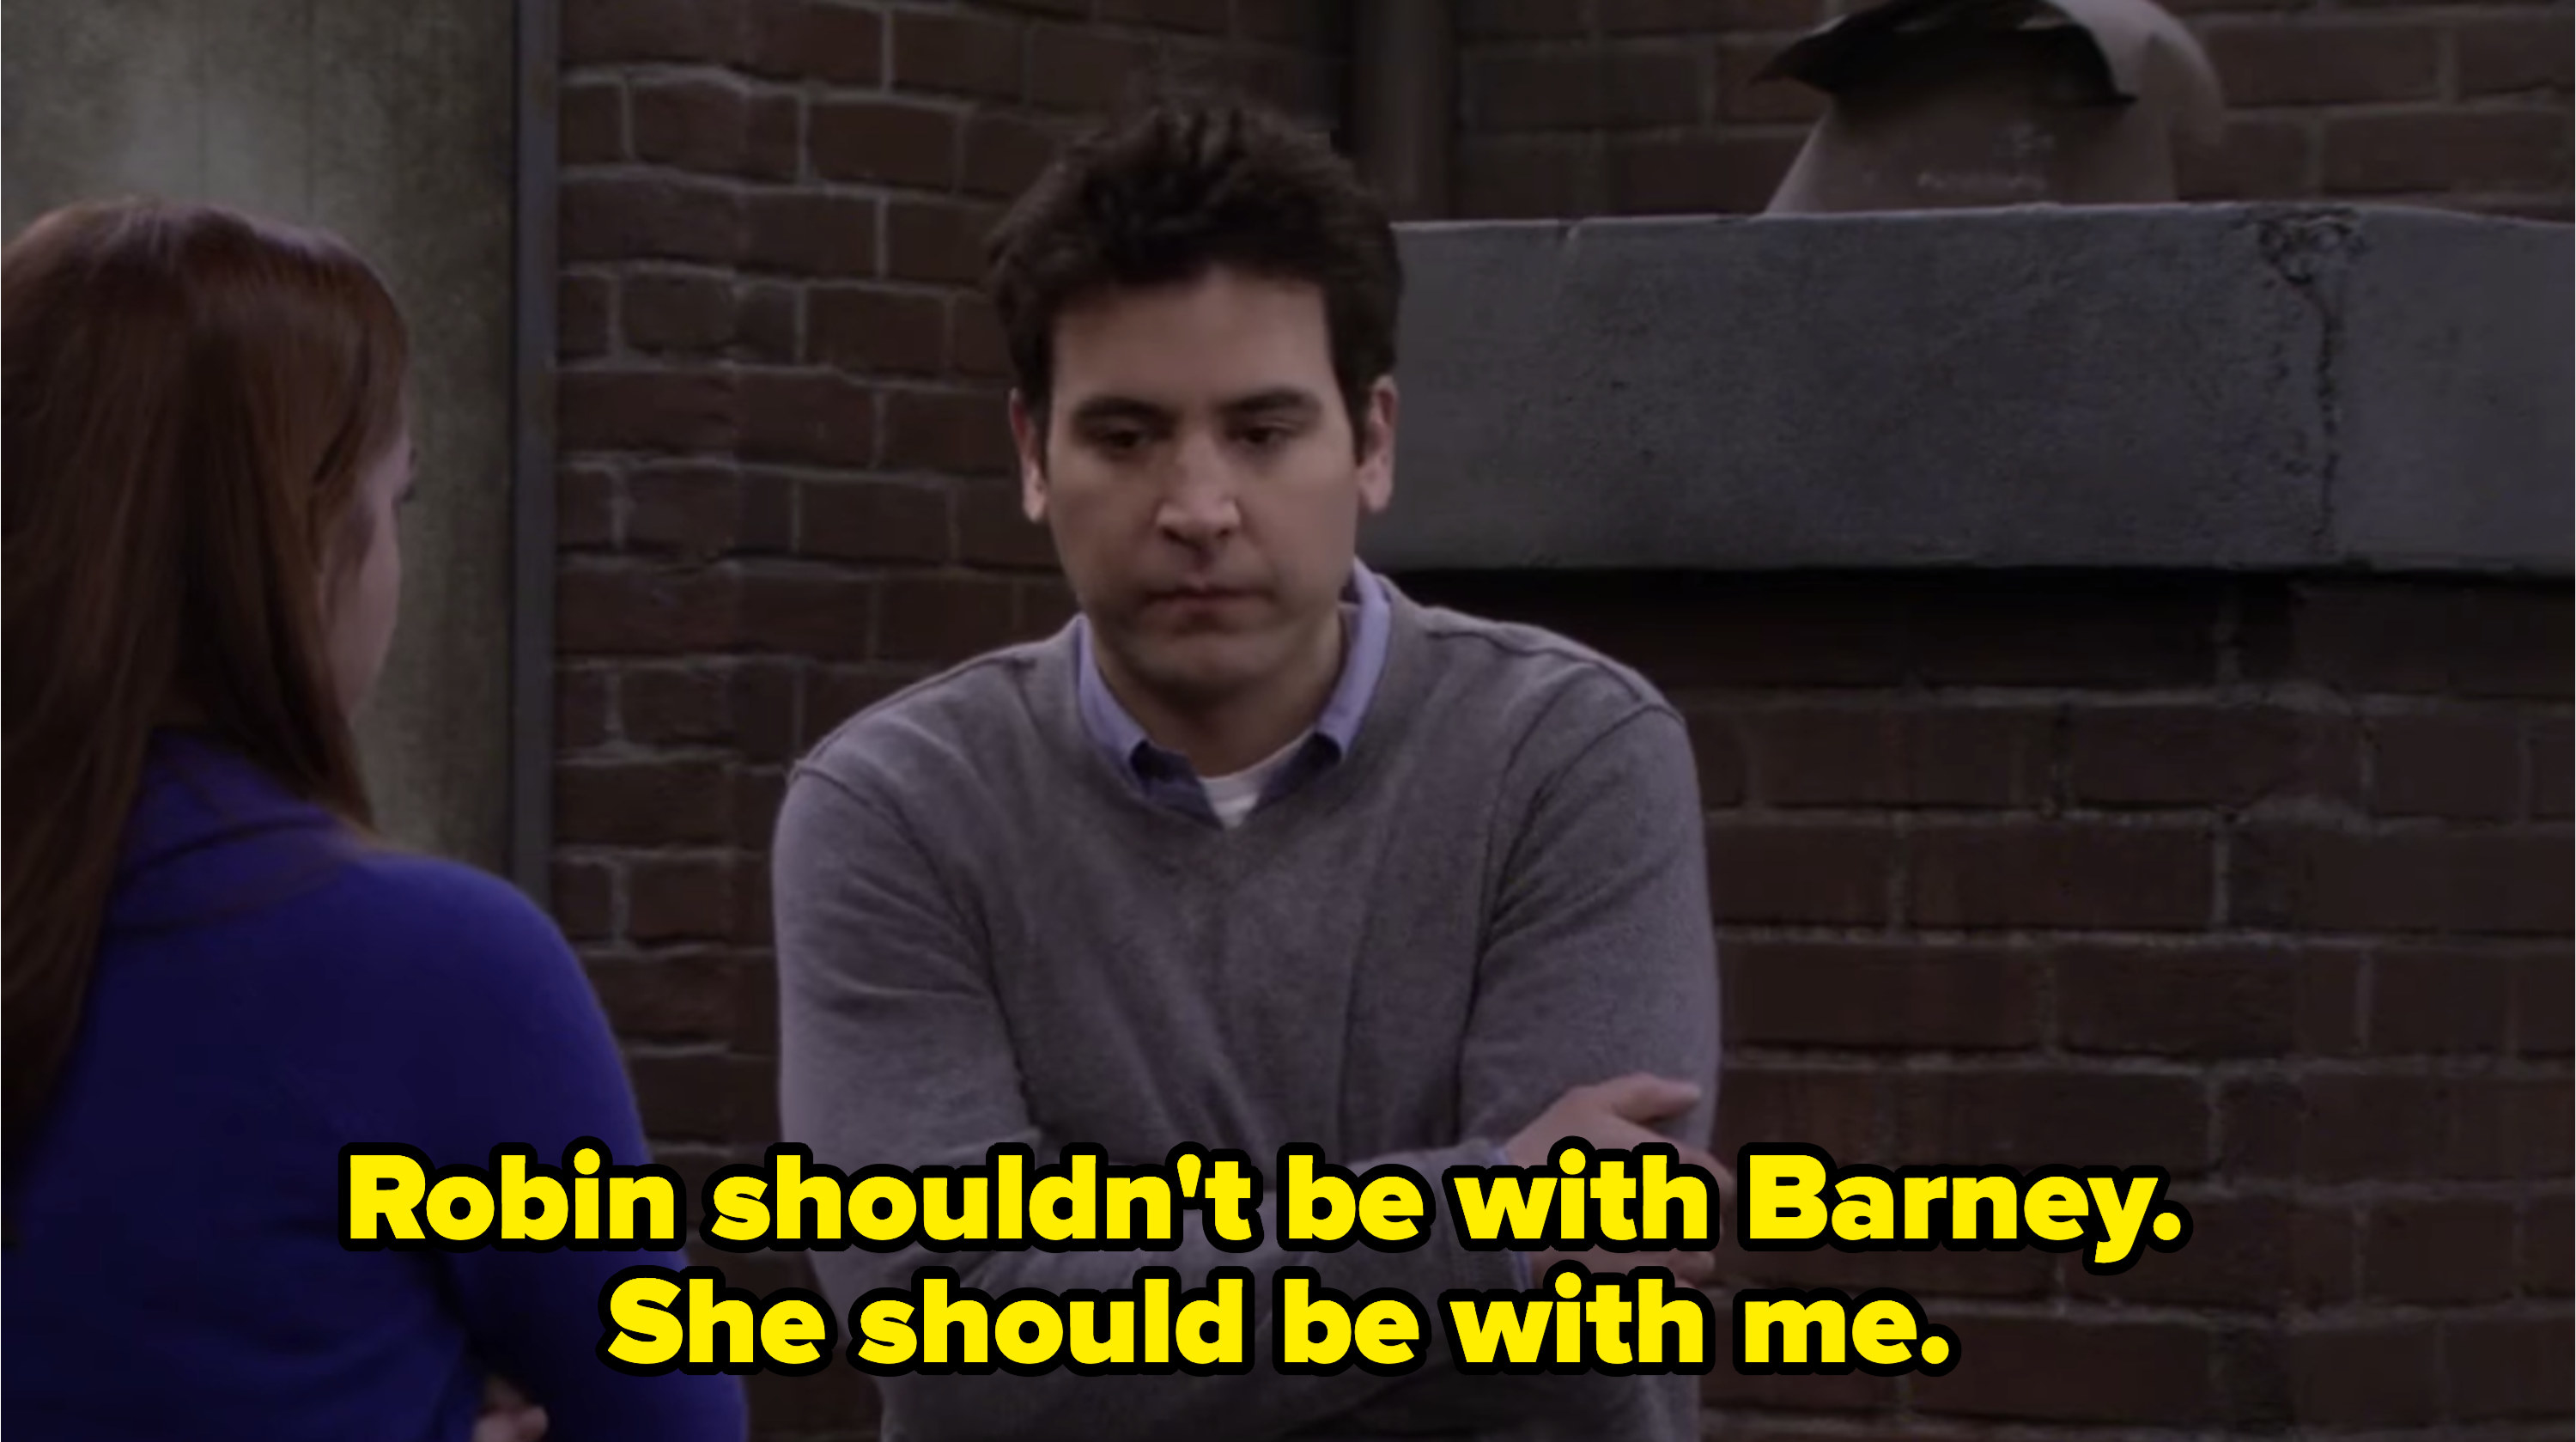 Ted saying Robin should be with him instead of Barney